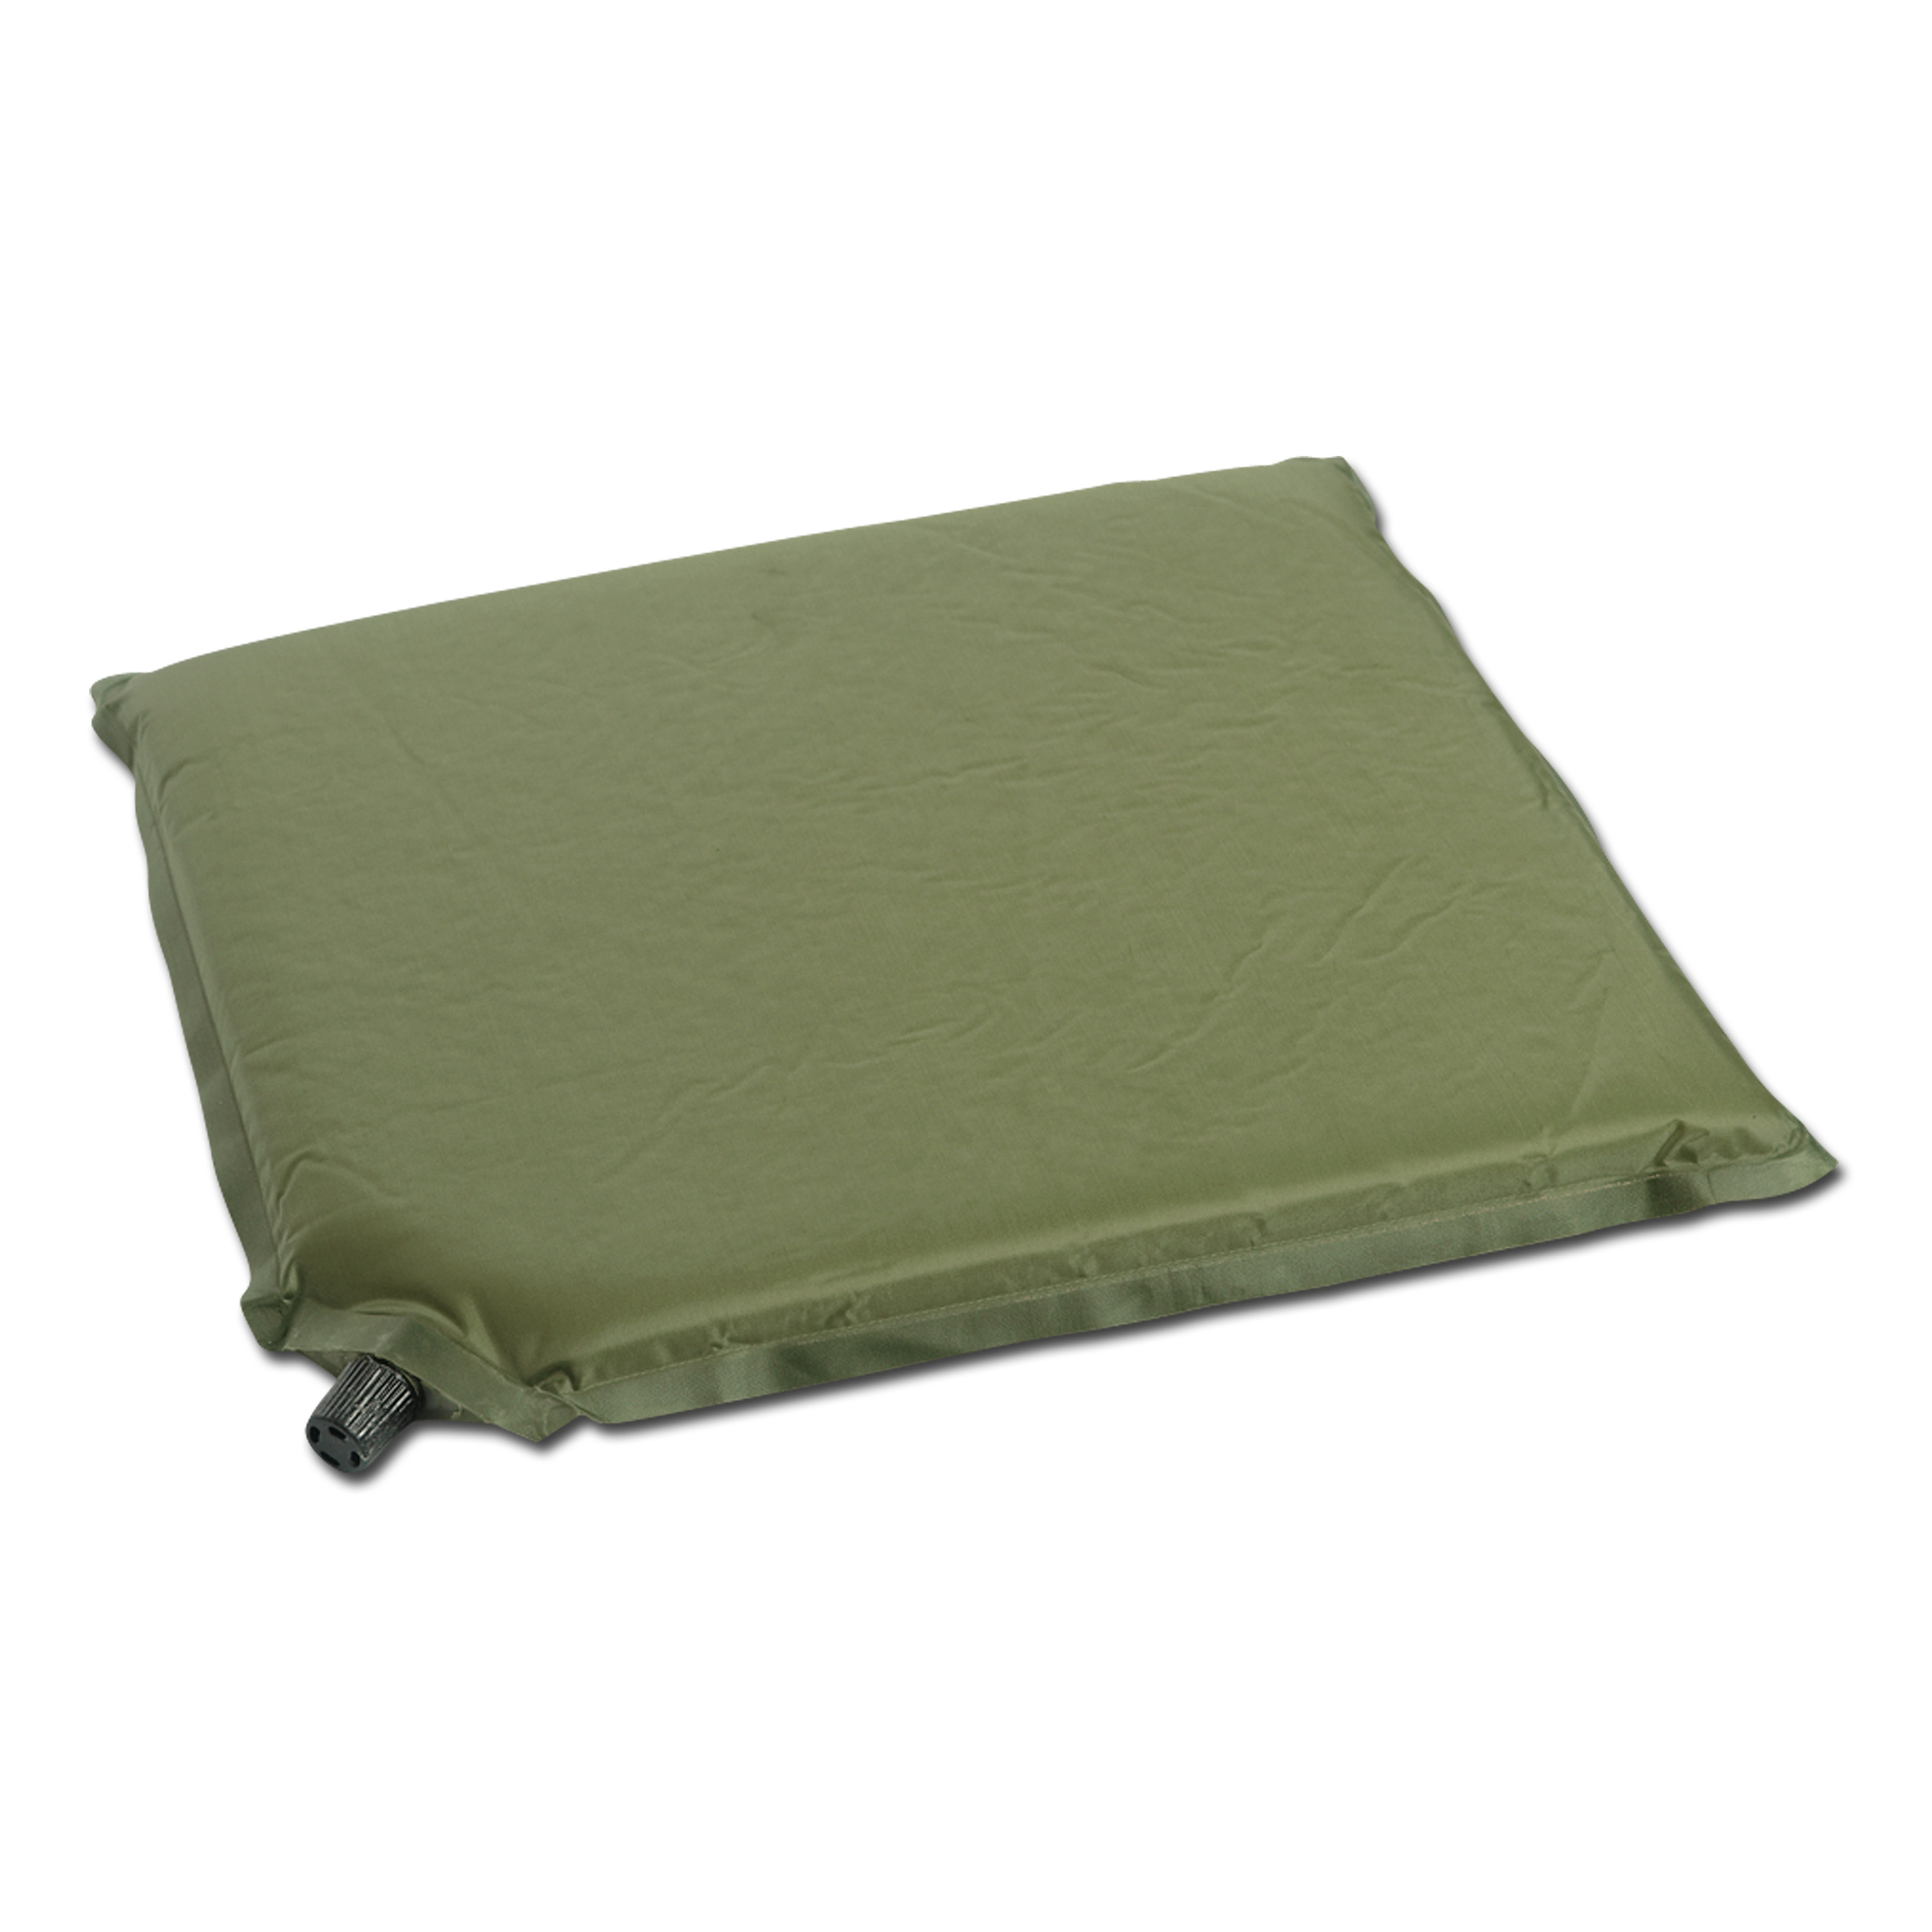 Asiento autoinflable Mil-Tec verde oliva